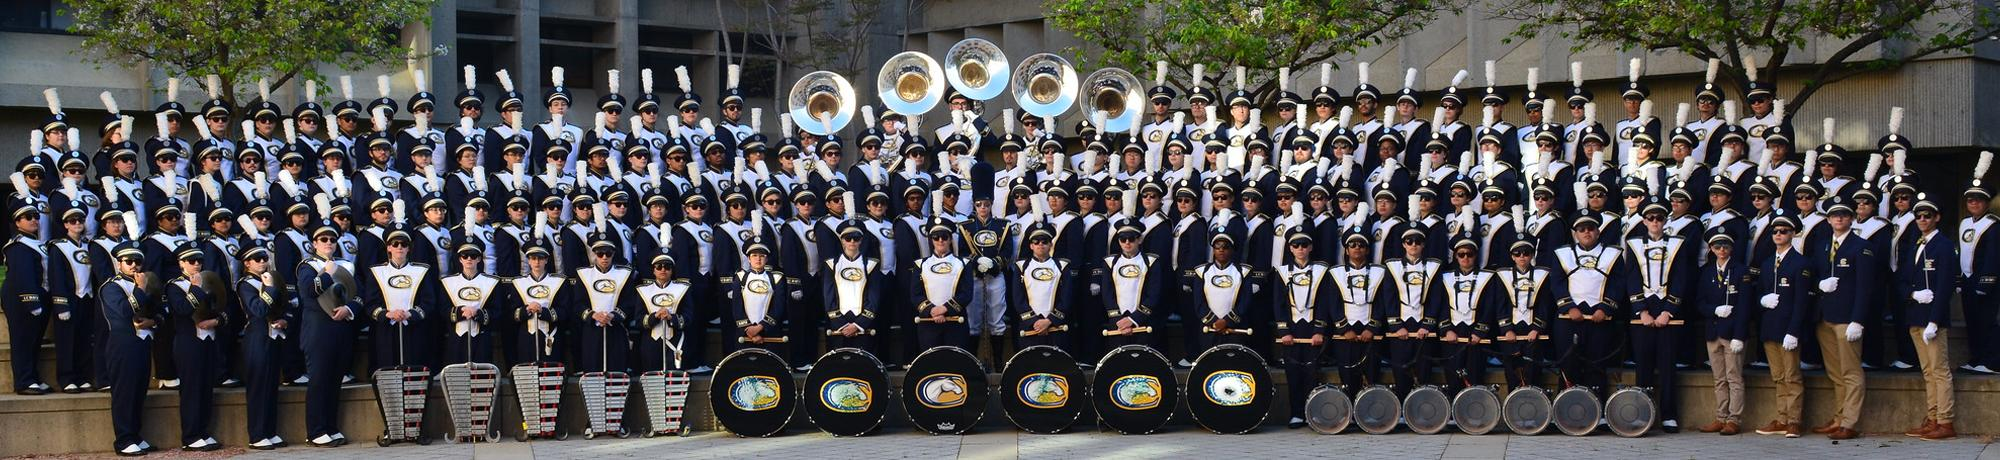 Marching Band in full dress uniforms.